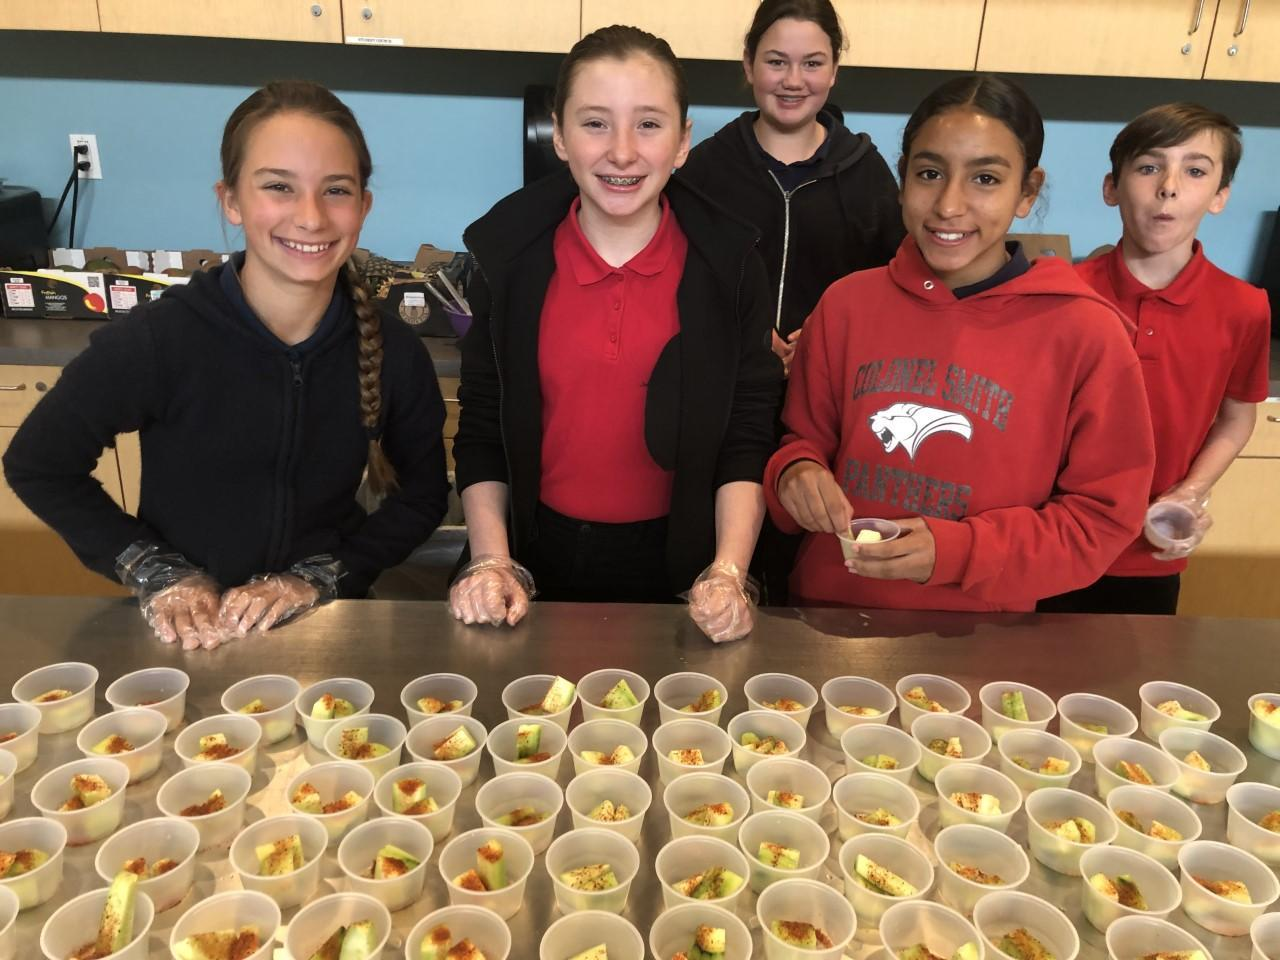 Students hand out healthy food samples.